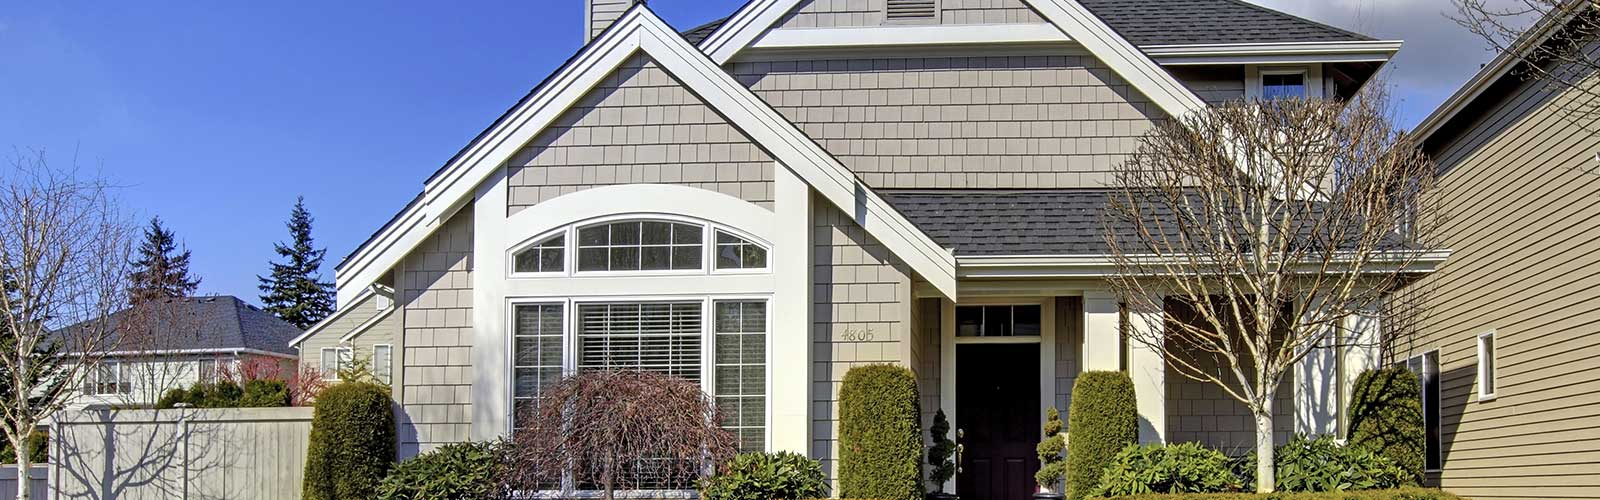 Classic New American House Exterior in the Spring